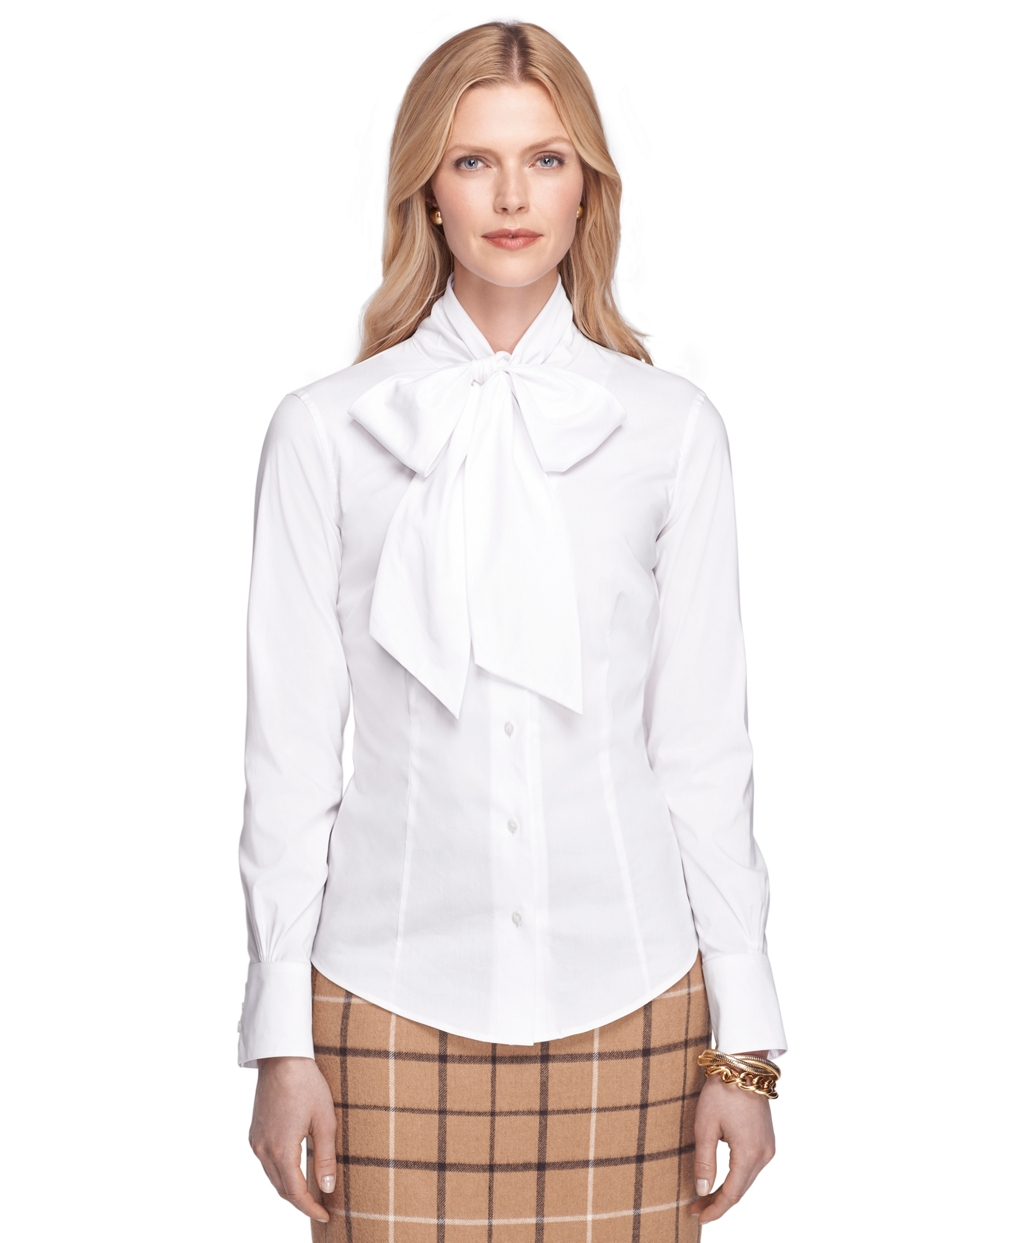 Brooks Brothers Tailored Fit Cotton Stretch Shirt In White